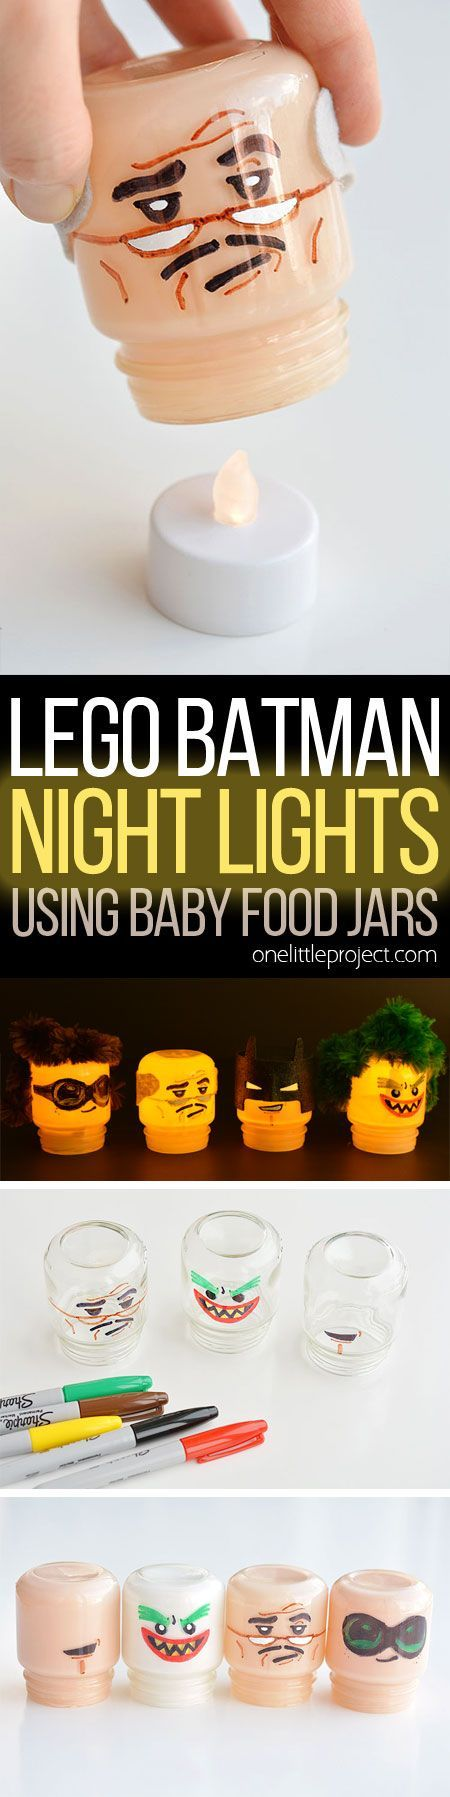 These LEGO Batman Night Lights were inspired by The LEGO Batman Movie in theaters February 10! Have you ever noticed how baby food jars are the EXACT same shape as LEGO heads?! Just draw on the faces and paint the jars! What a fun little project! #sponsored #LEGOBatmanMovie